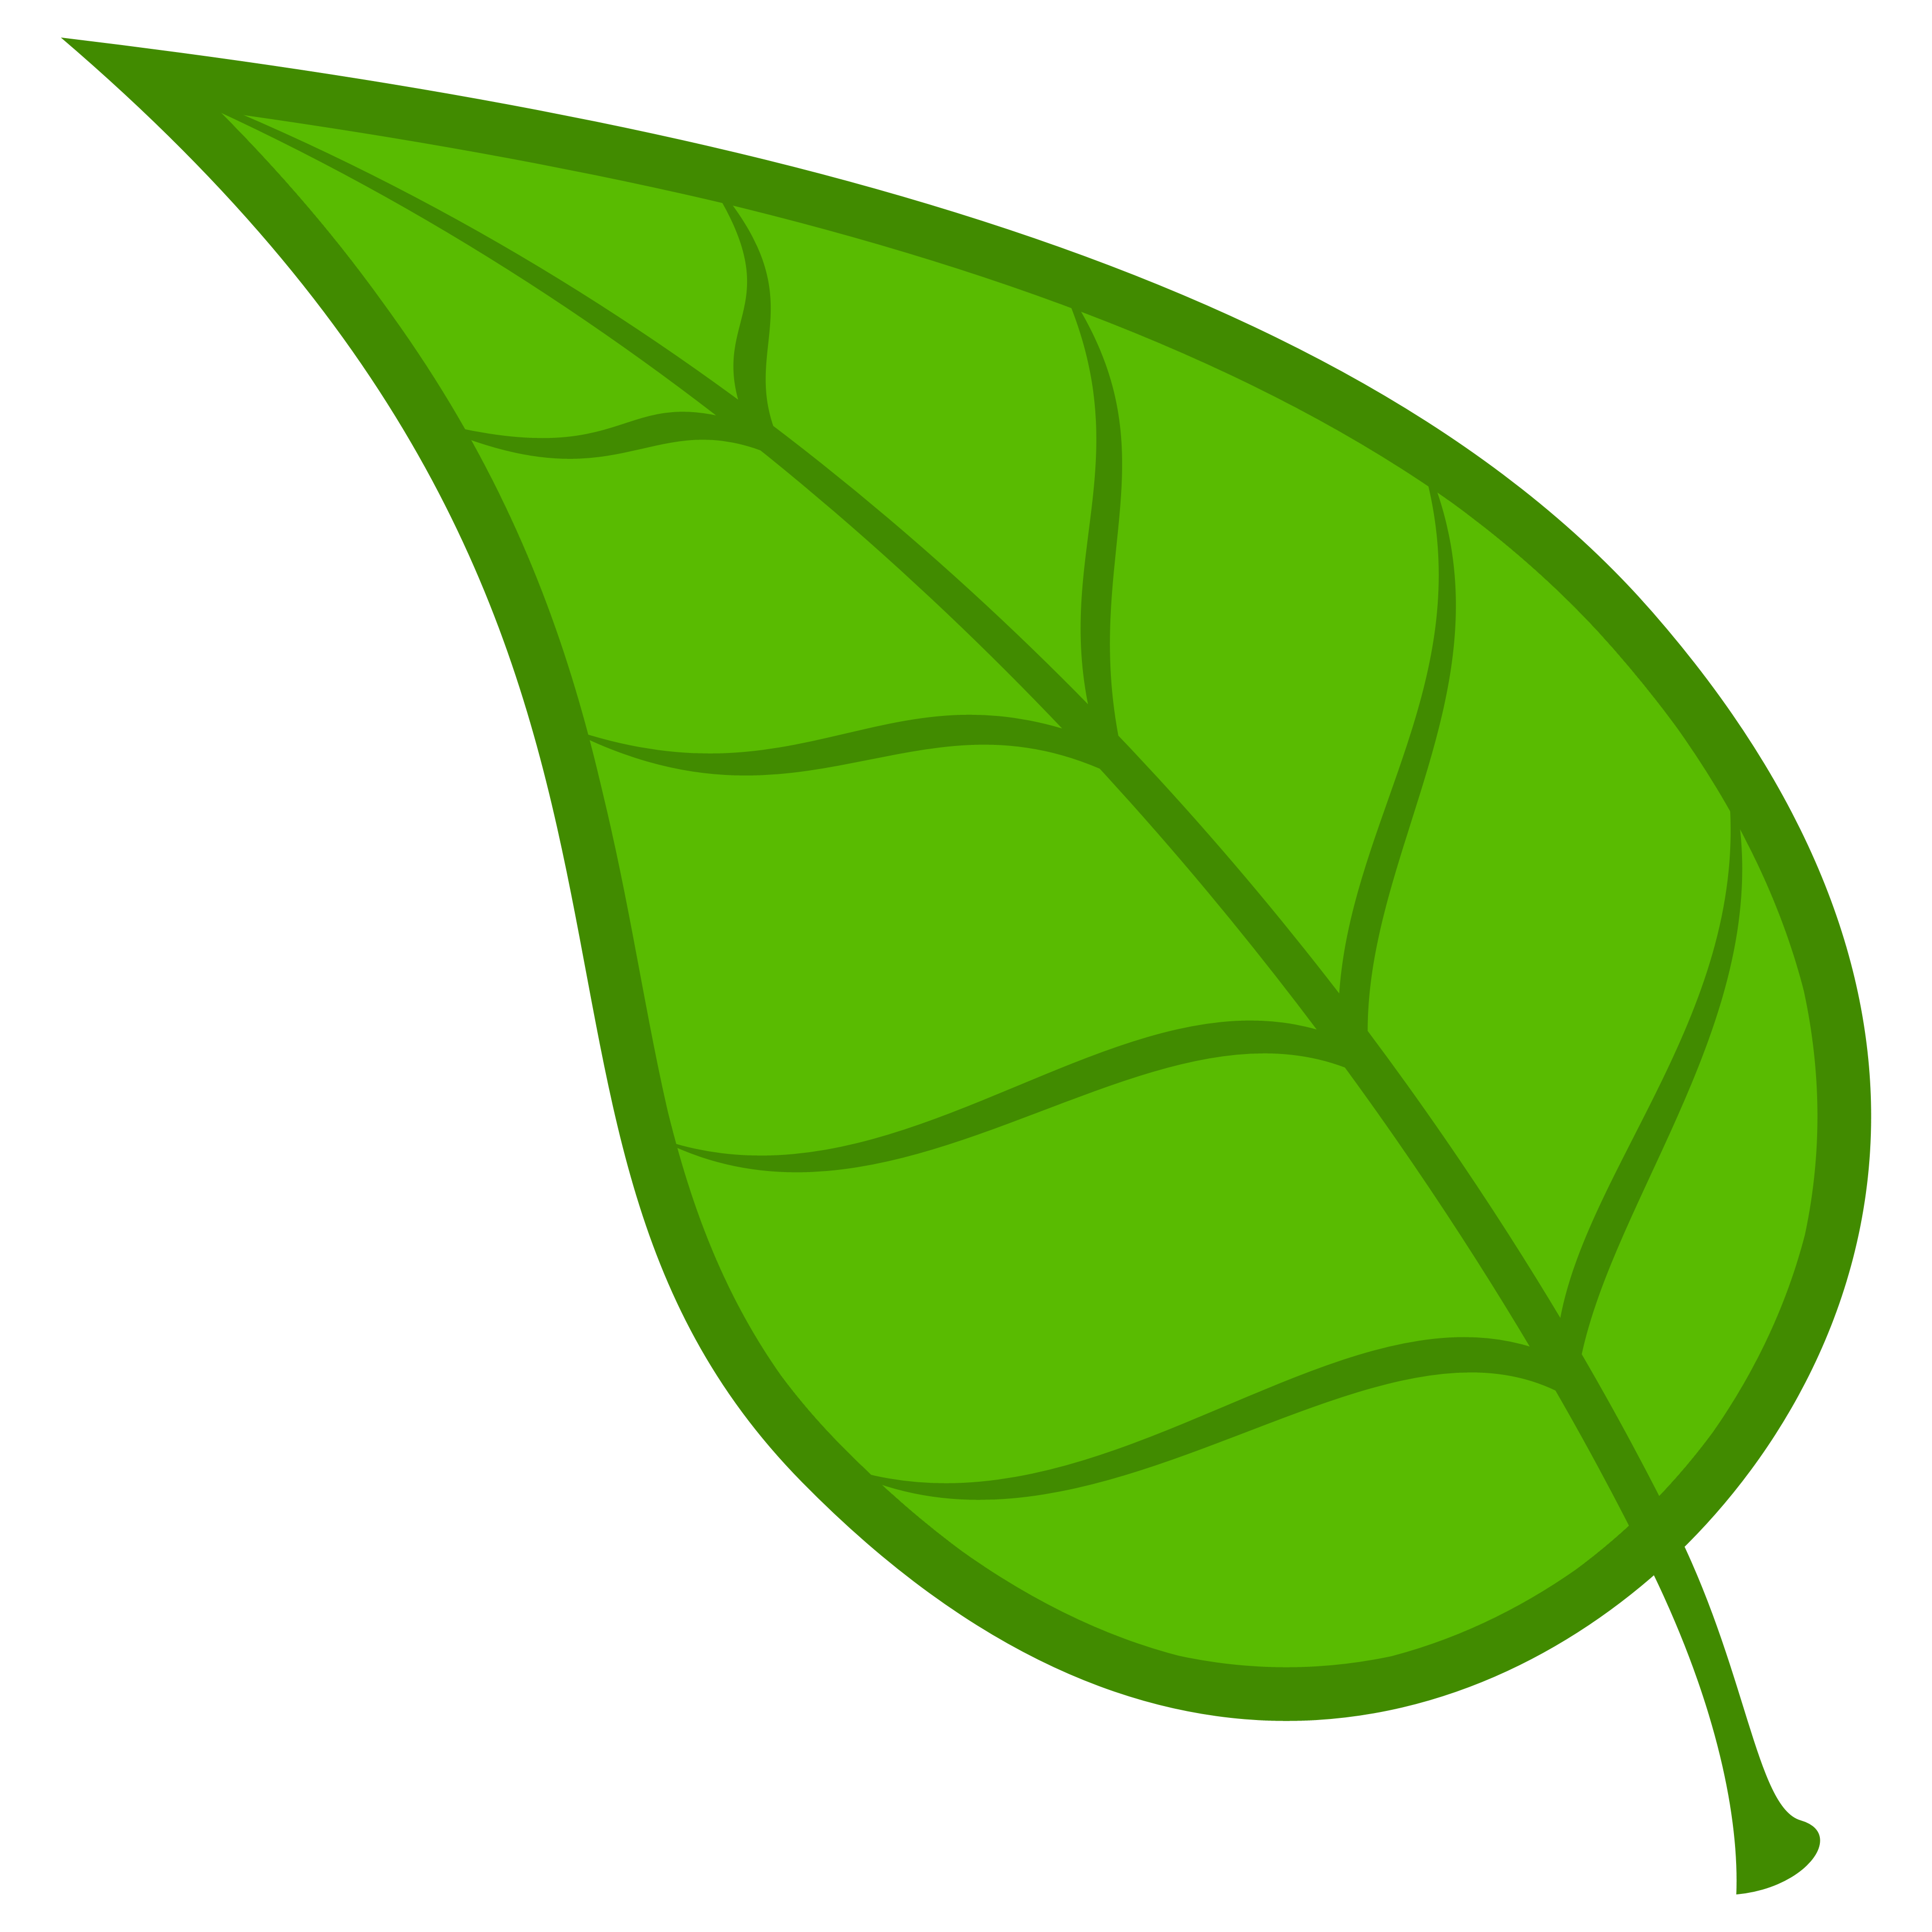 Leaves clipart green leaf #7.